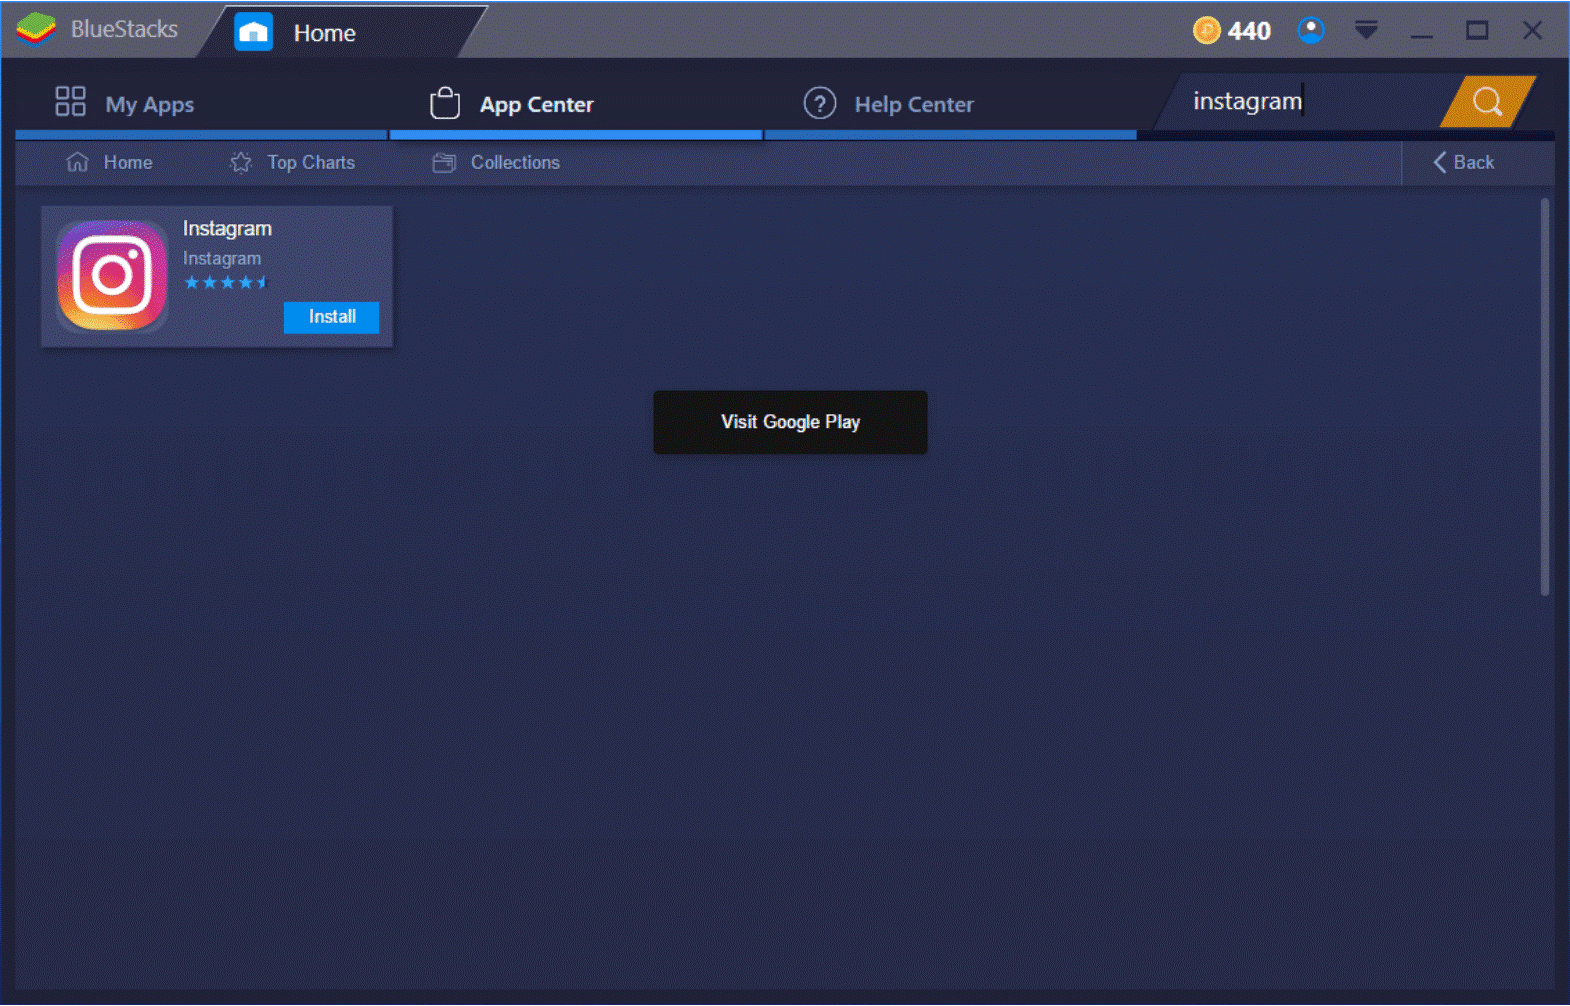 Screenshot of the Bluestacks tool